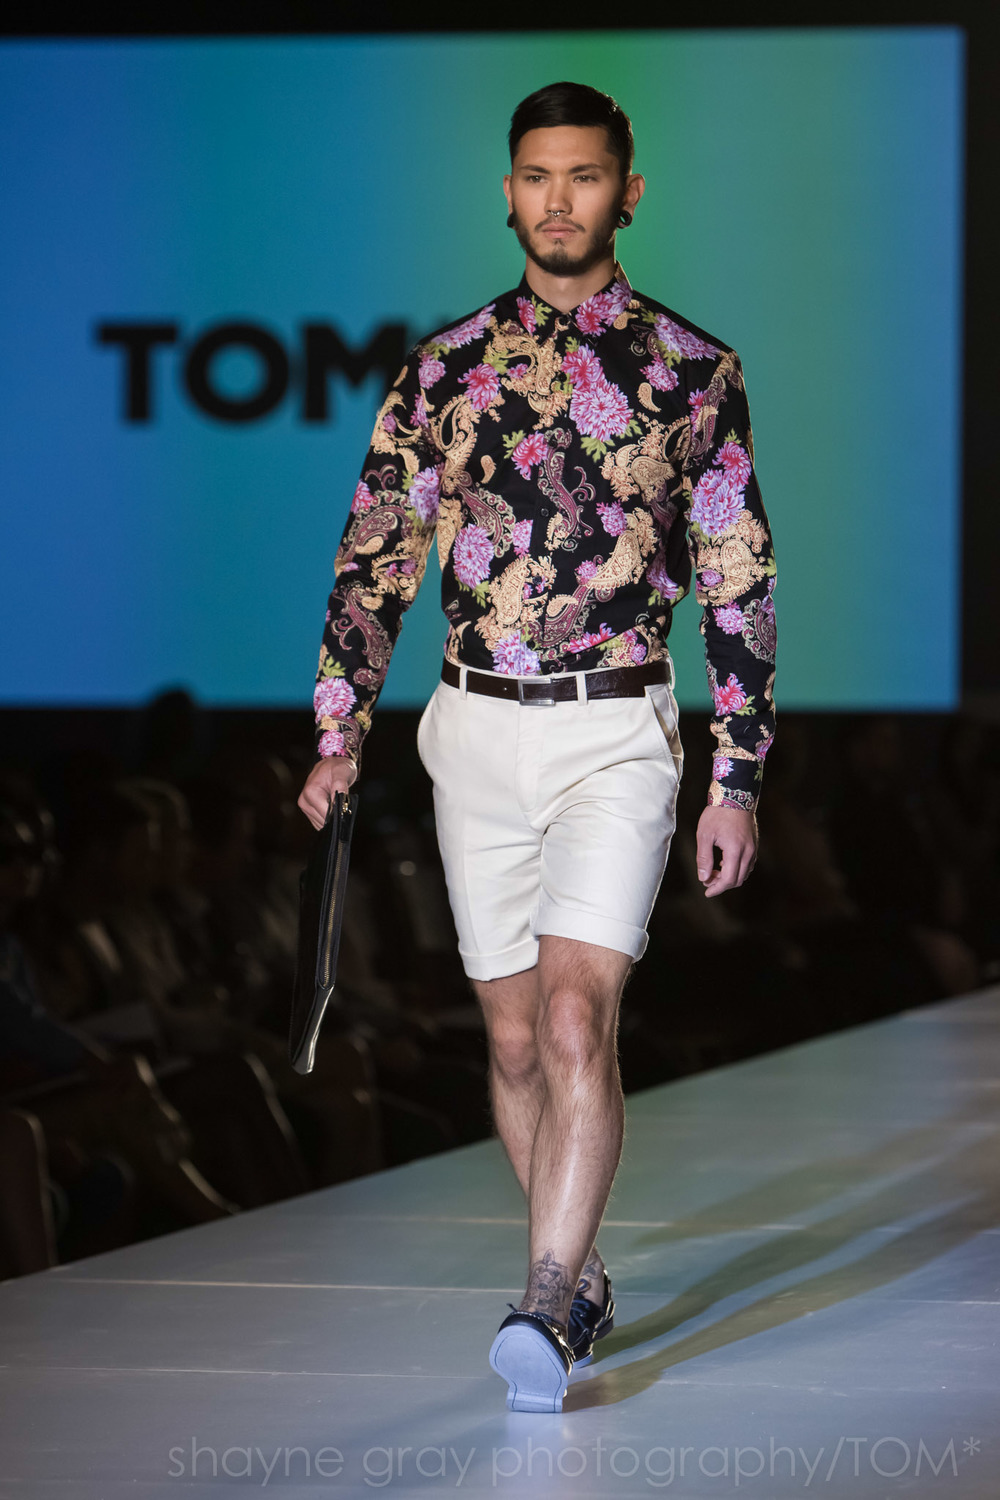 Shayne-Gray-Toronto-men's-fashion_week-TOM-just-ta-6079.jpg